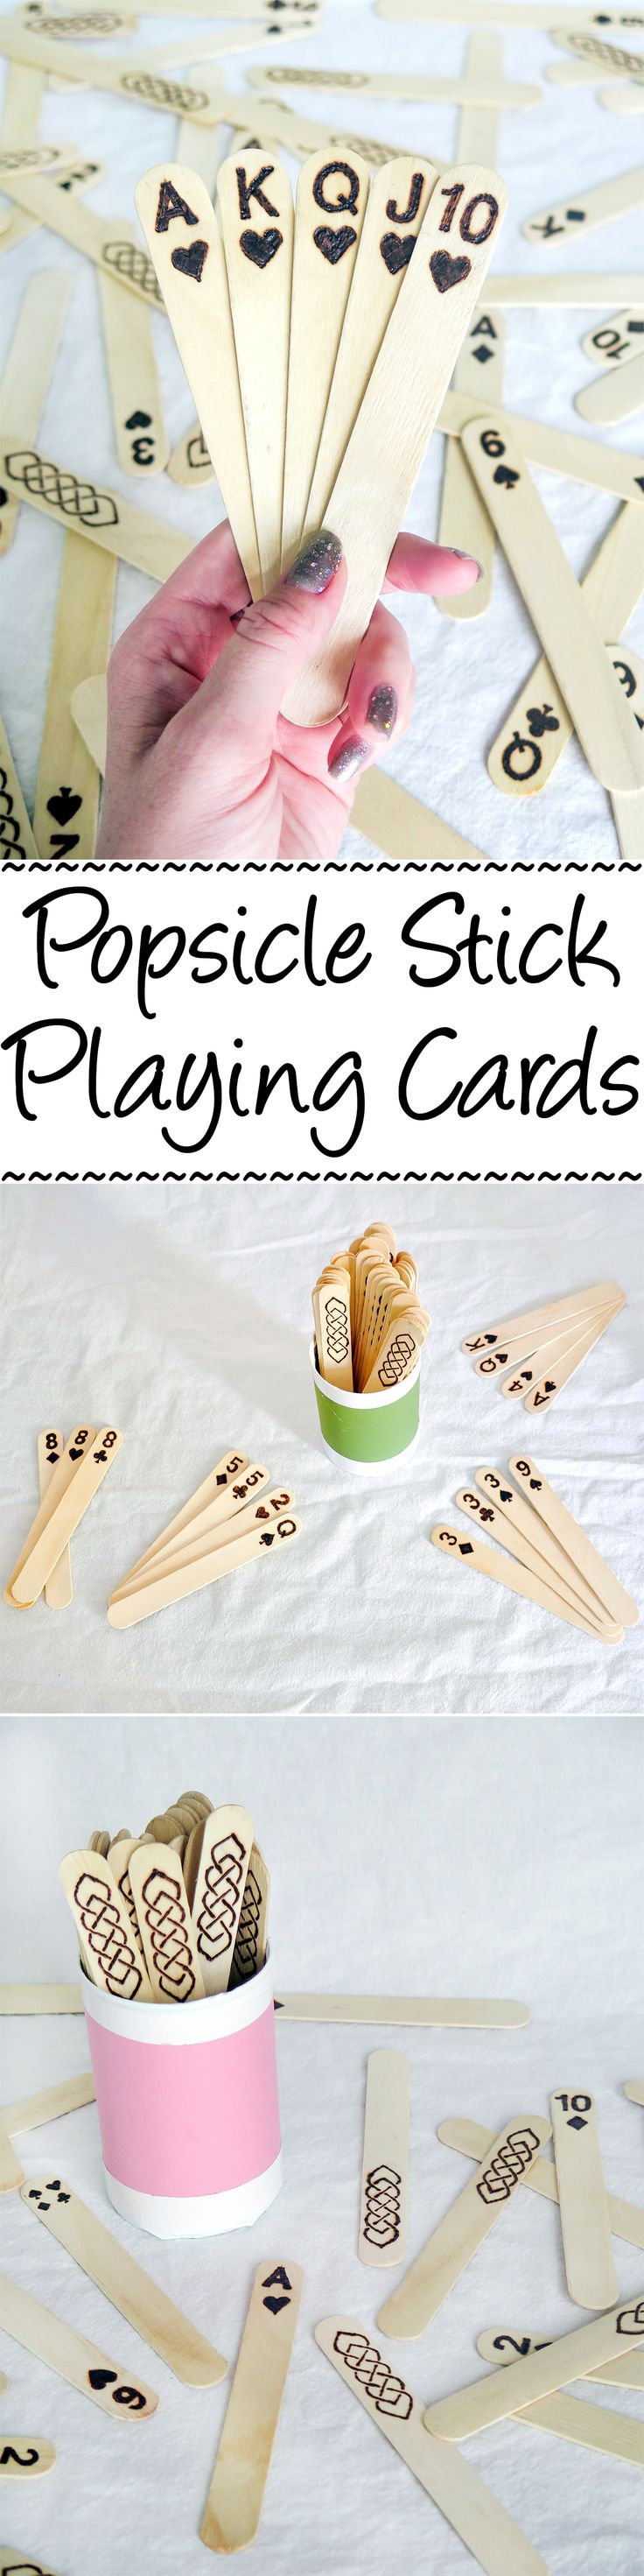 Spielkarten aus Eisstiel selber machen - prima für Reisen in den Urlaub *** DIY Popsicle Stick Playing Cards - perfect for kids in the car Journeys